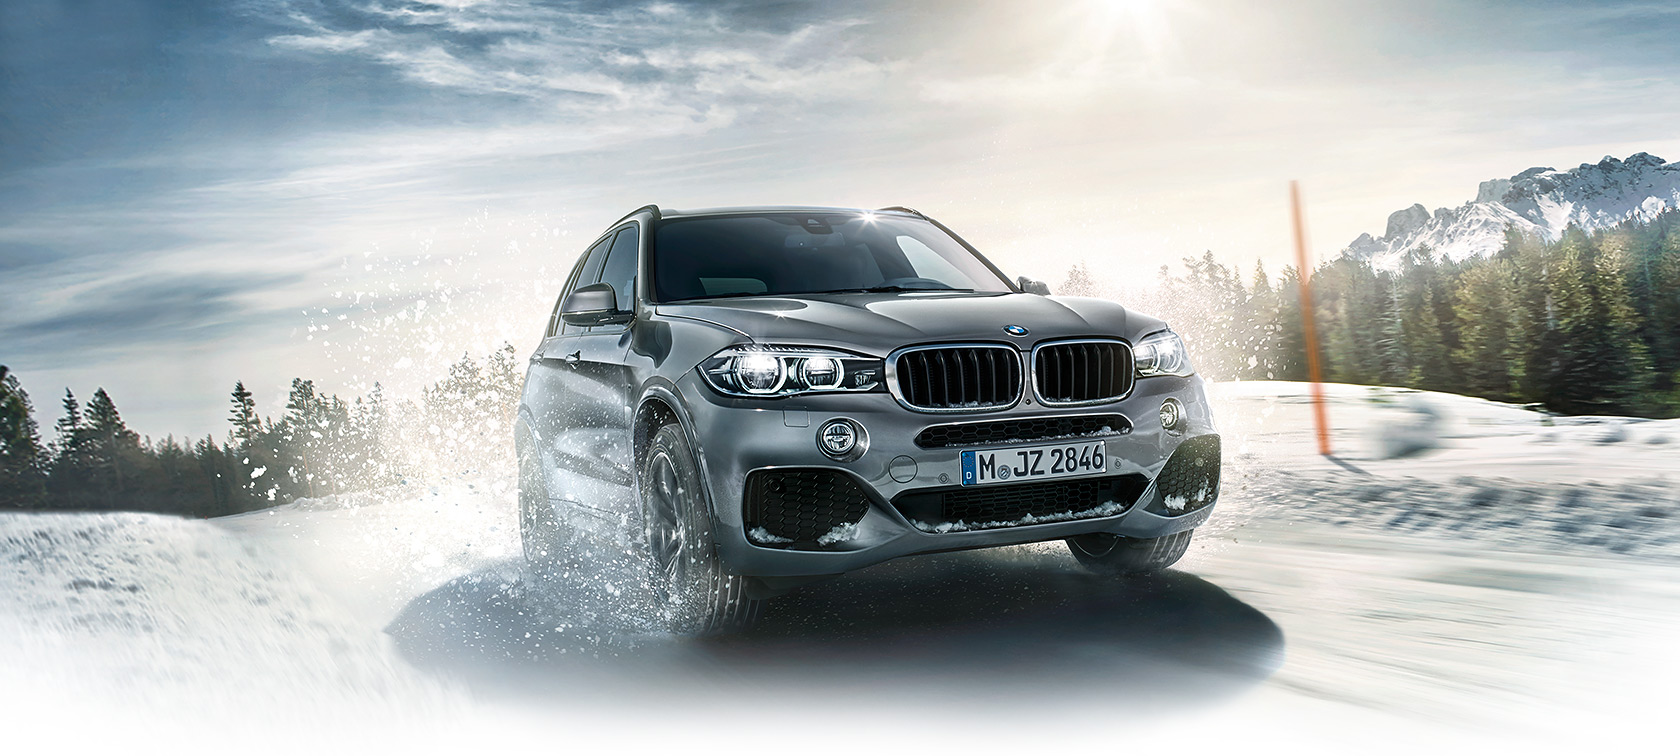 BMW xDrive racing on the snow.